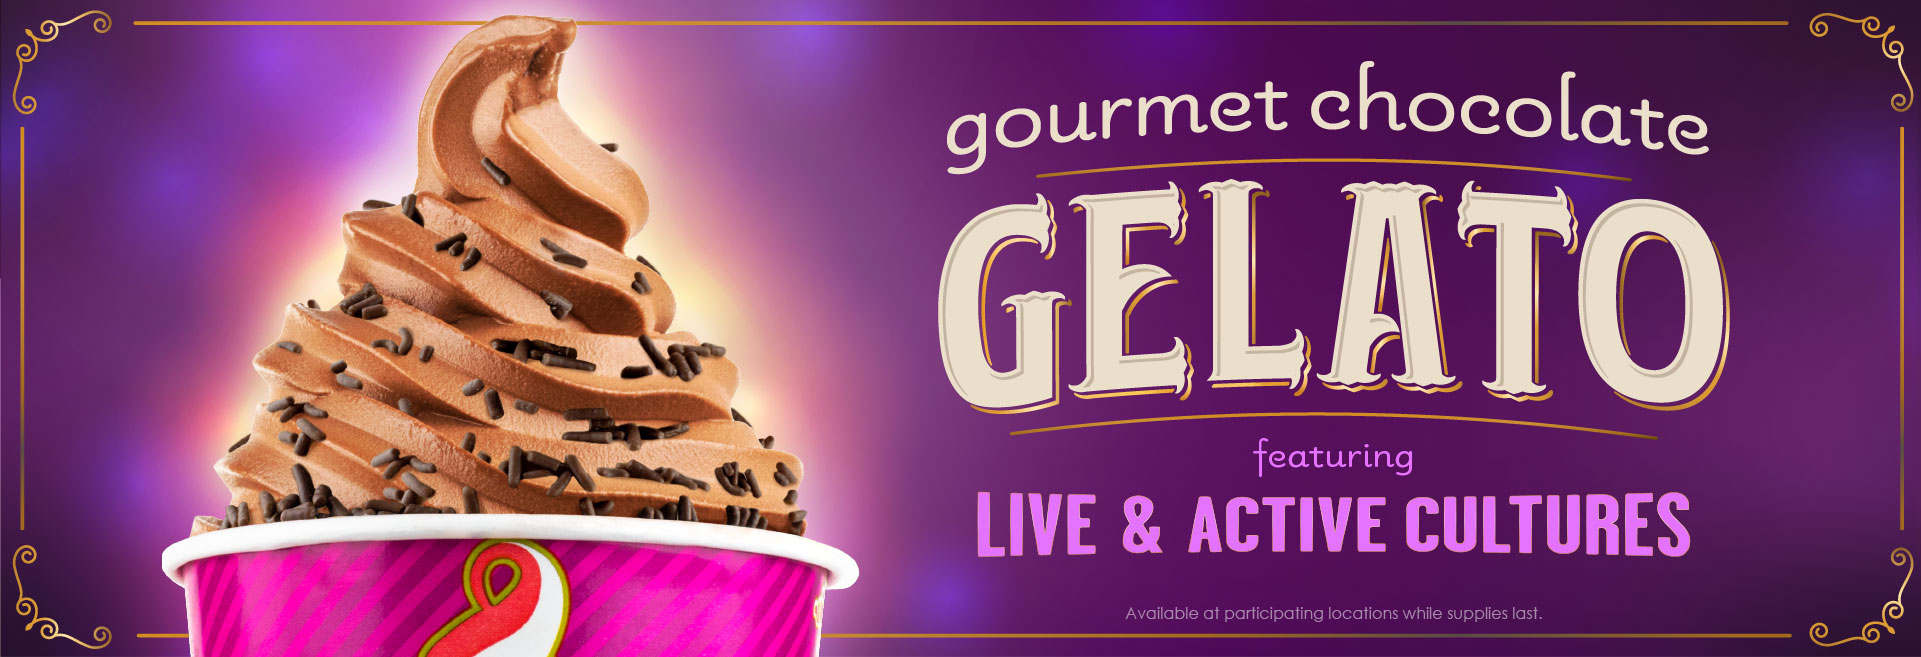 An image of Gourmet Chocolate Gelato. Introducing Gourmet Chocolate Gelato featuring Live & Active Cultures. We're excited to introduce a brand new way to enjoy Menchie's. Our new Gourmet Chocolate Gelato flavor is filled with rich, creamy, chocolate flavor - and contains live and active cultures! Mixing at a Menchie's near you.